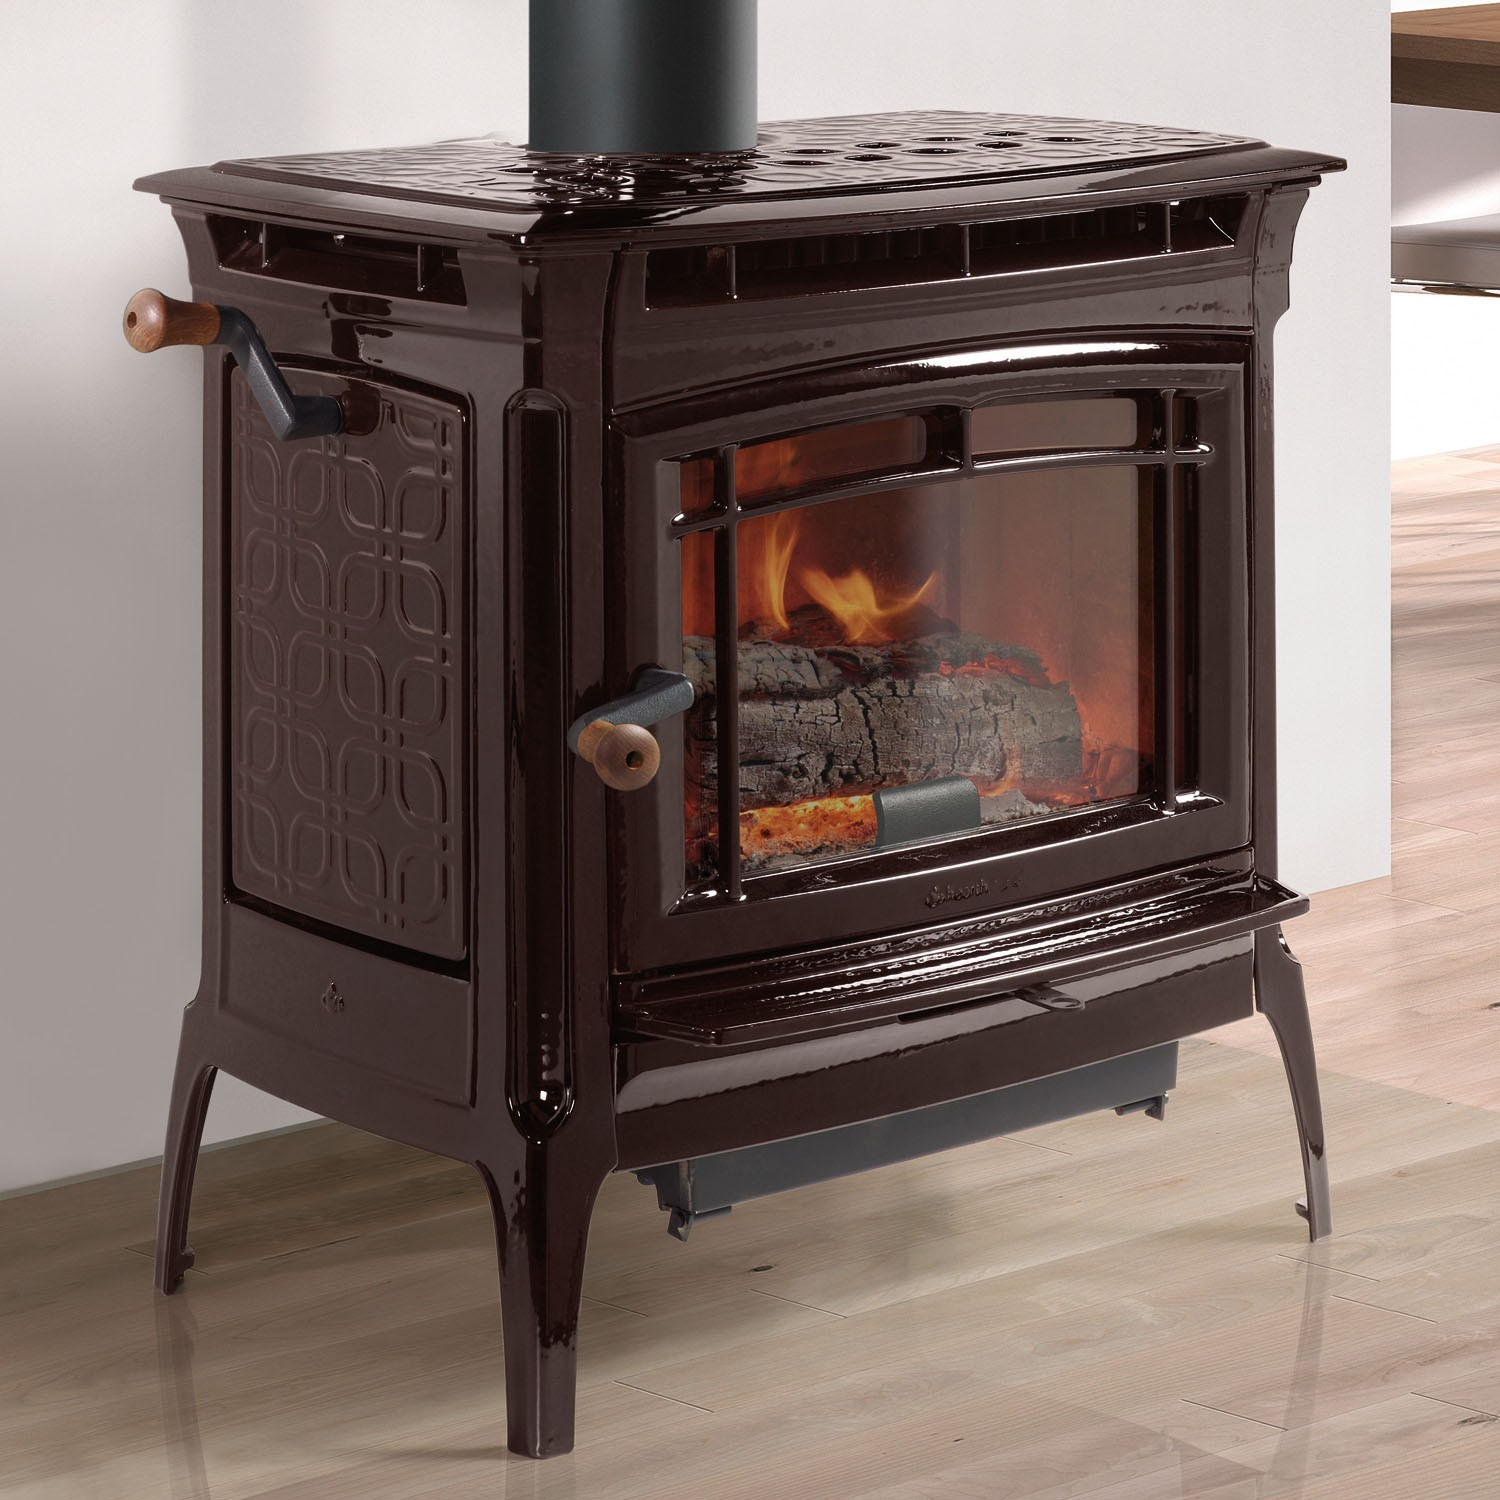 Wood Stoves (Page 2) - Home & Hearth Wood Stoves 2